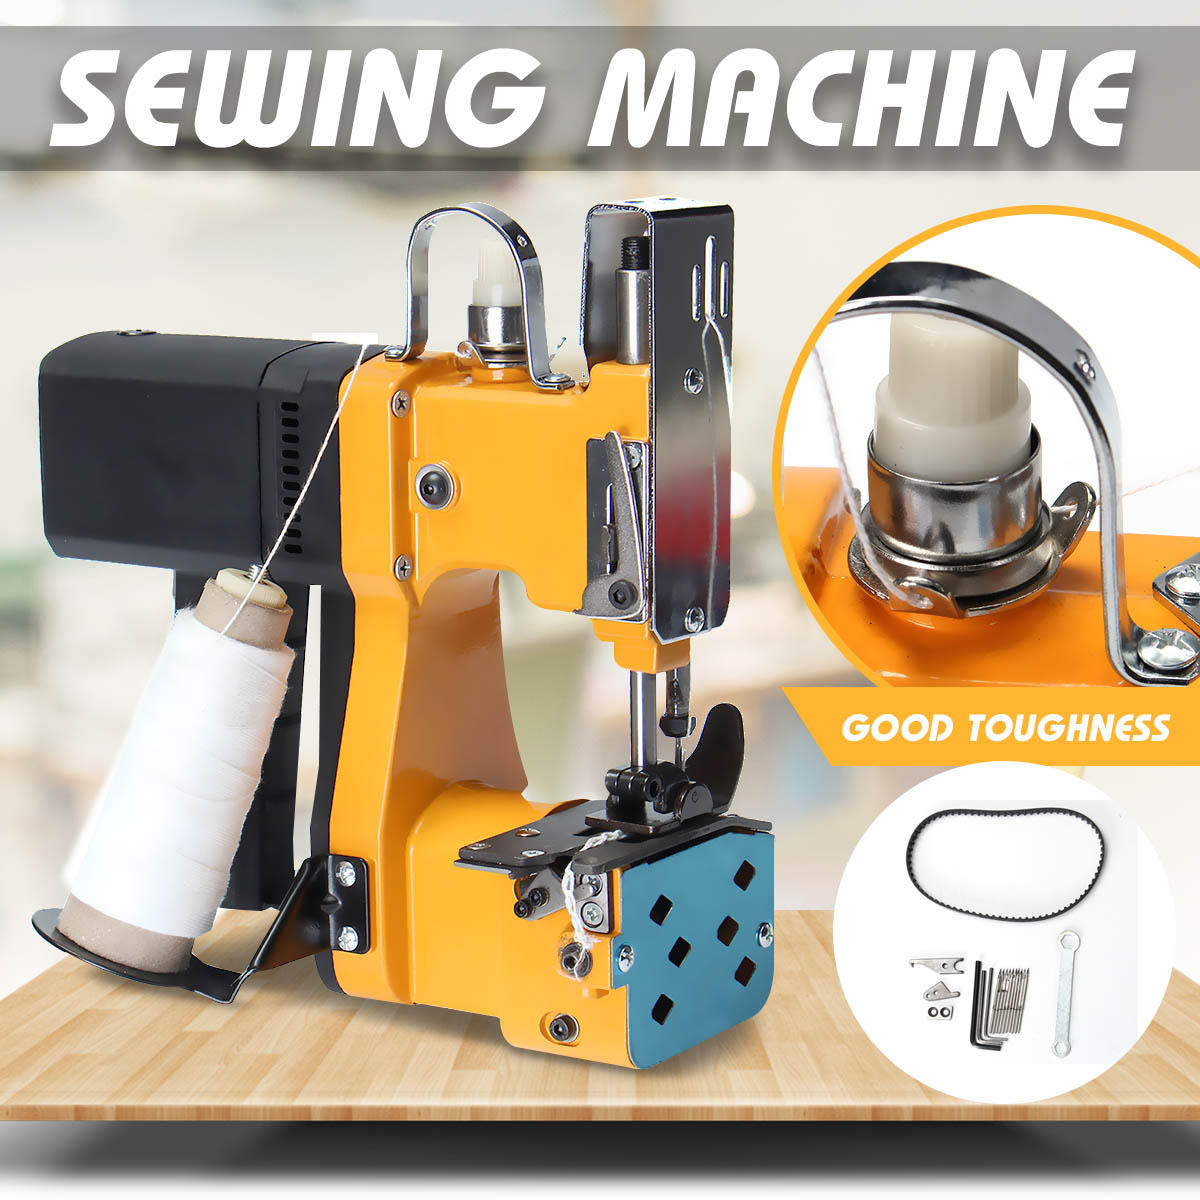 220V Portable Electric Sewing Machine Sealing Machines Kit for Home Textile Industrial Portable Bag Closer Stitching Mac фото